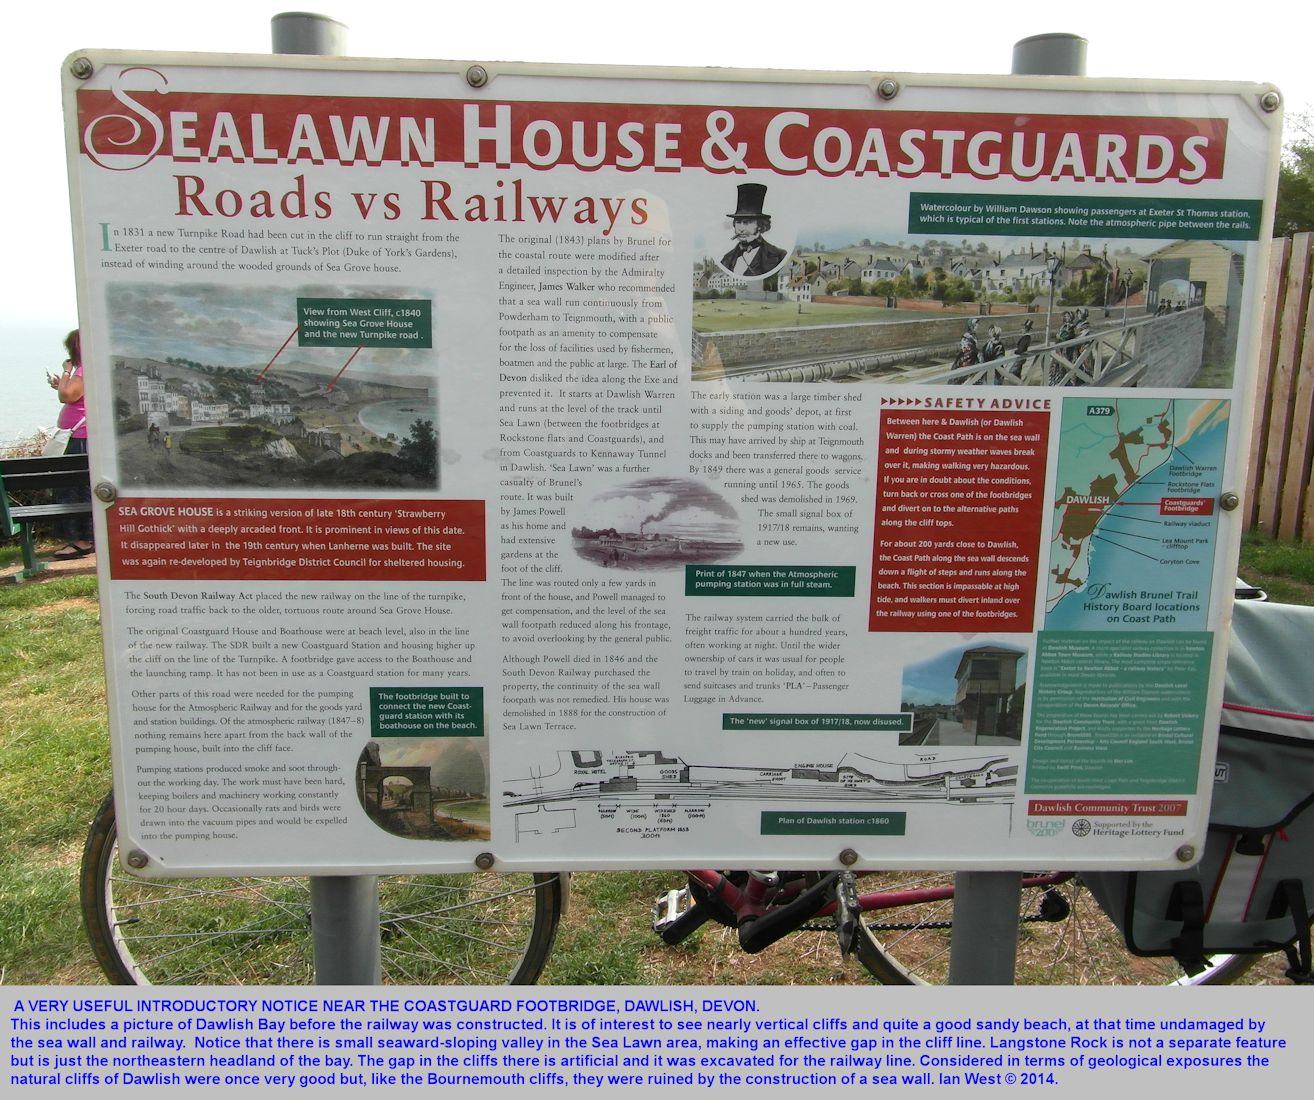 A useful explanatory notice about the history of the Dawlish coast on the cliff top near the Coastguard Footbridge, northeast side of Dawlish, Devon